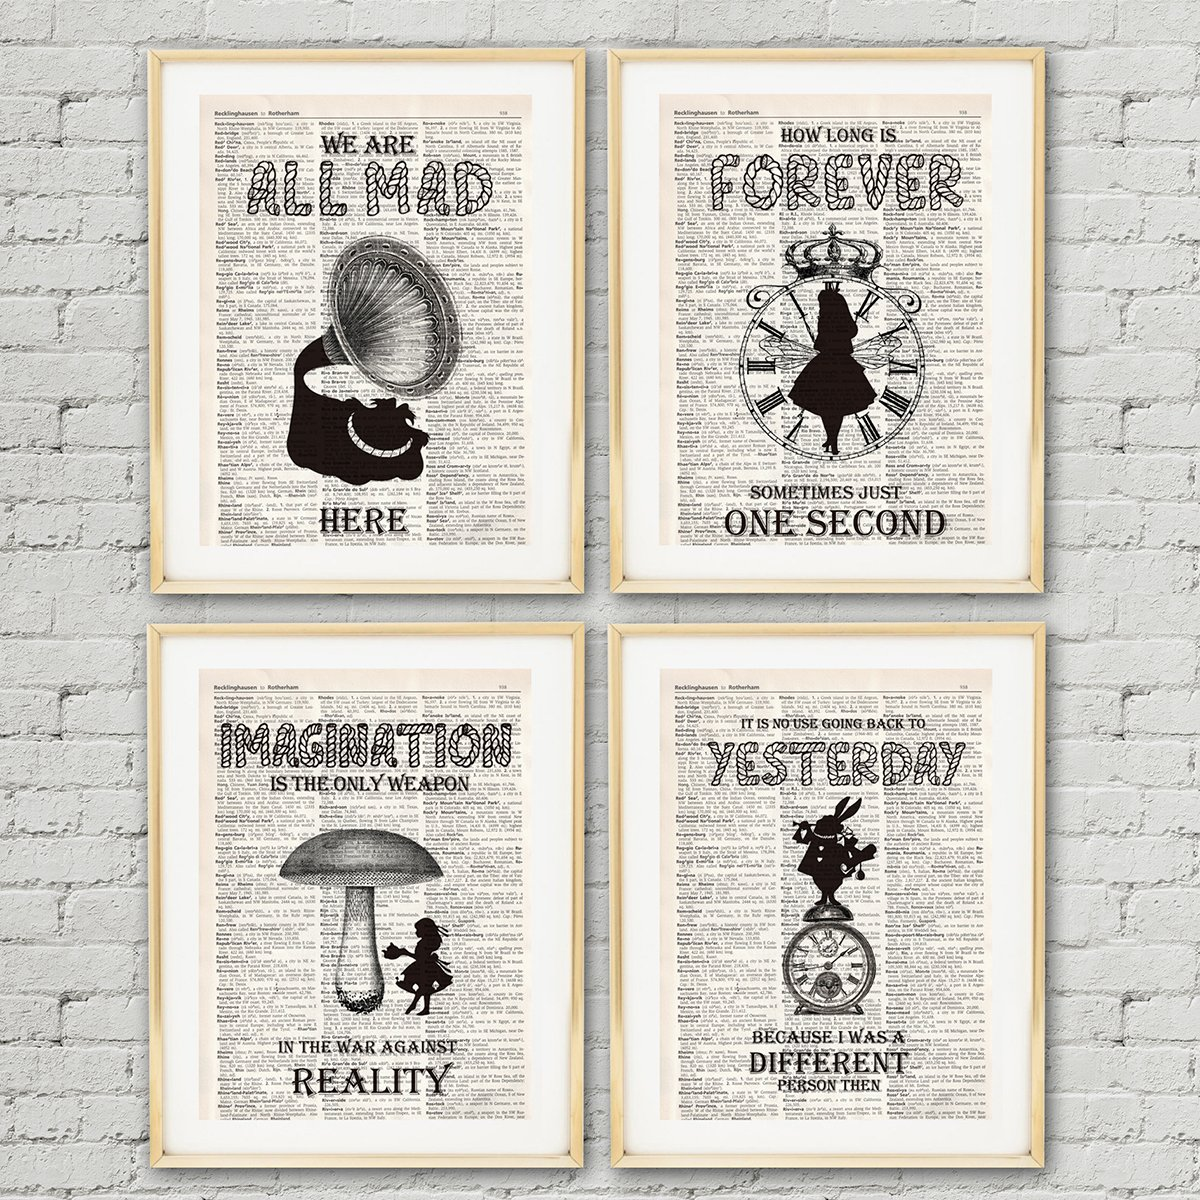 IHopes+ Alice in Wonderland Imagination Quotes and Sayings Vintage Book Art Prints | Set of Four Photos 8x10 Unframed | Great Gift for Living Room Bedroom Office Decor